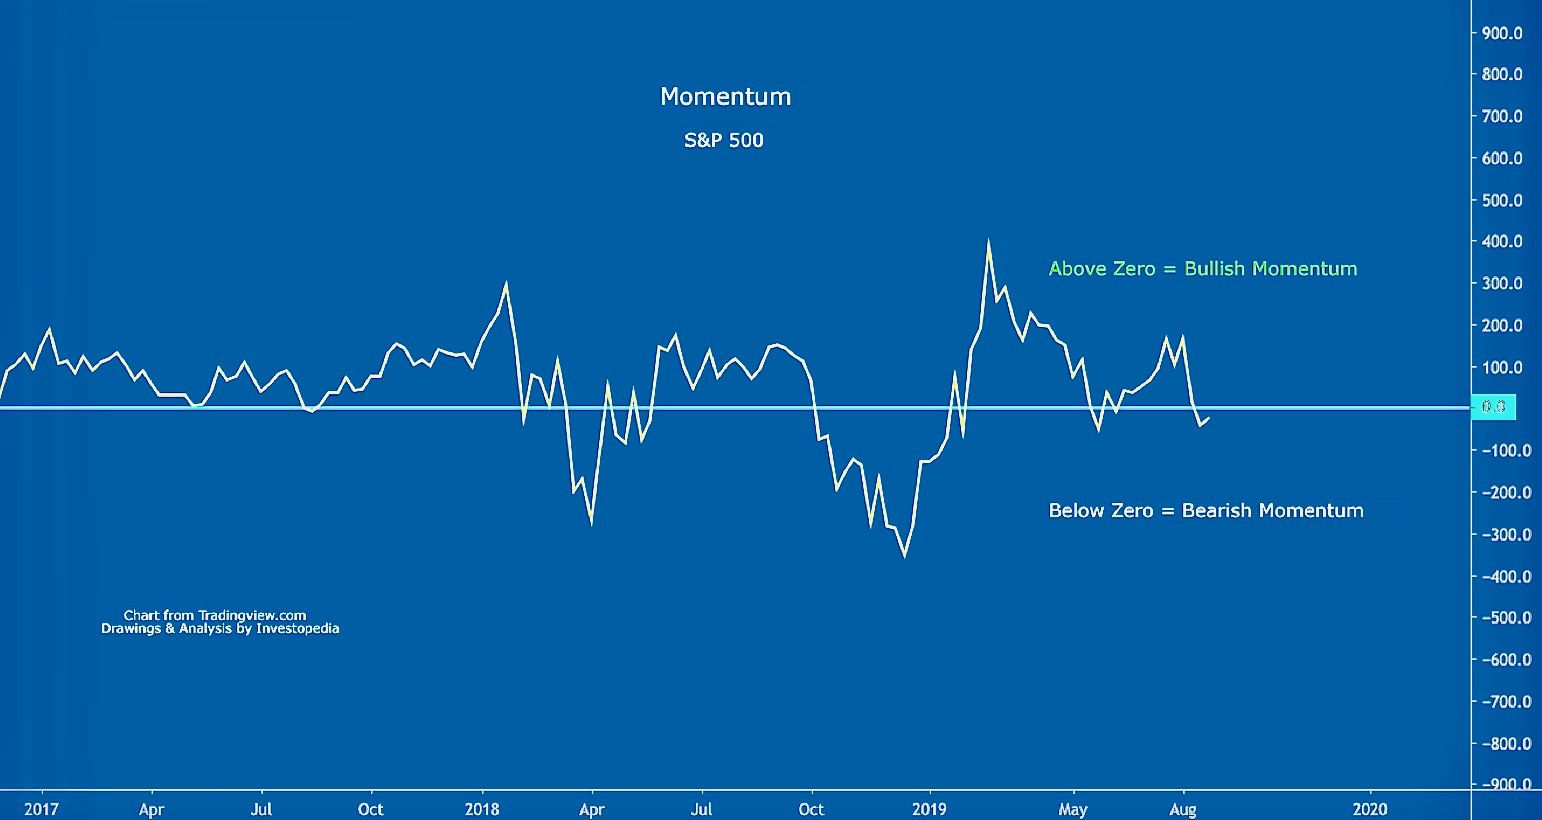 Momentum Example for the S&P 500